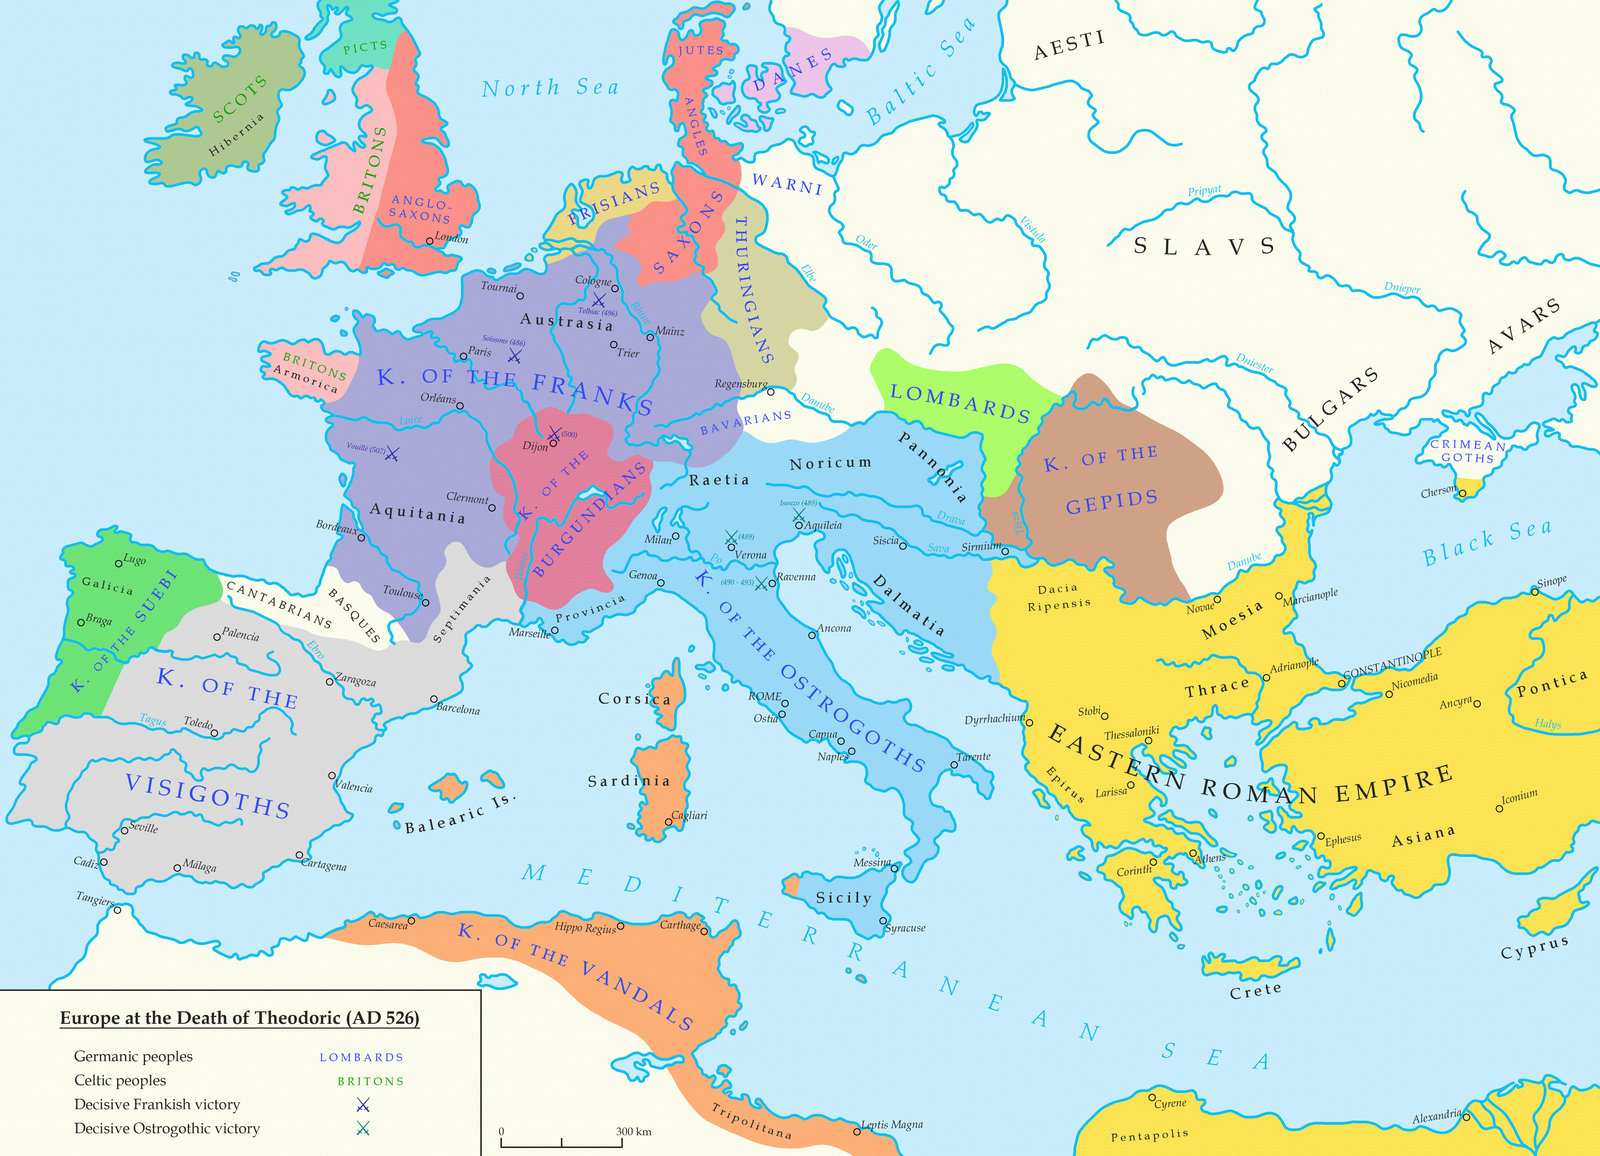 the barbarian kingdoms of eu in 526